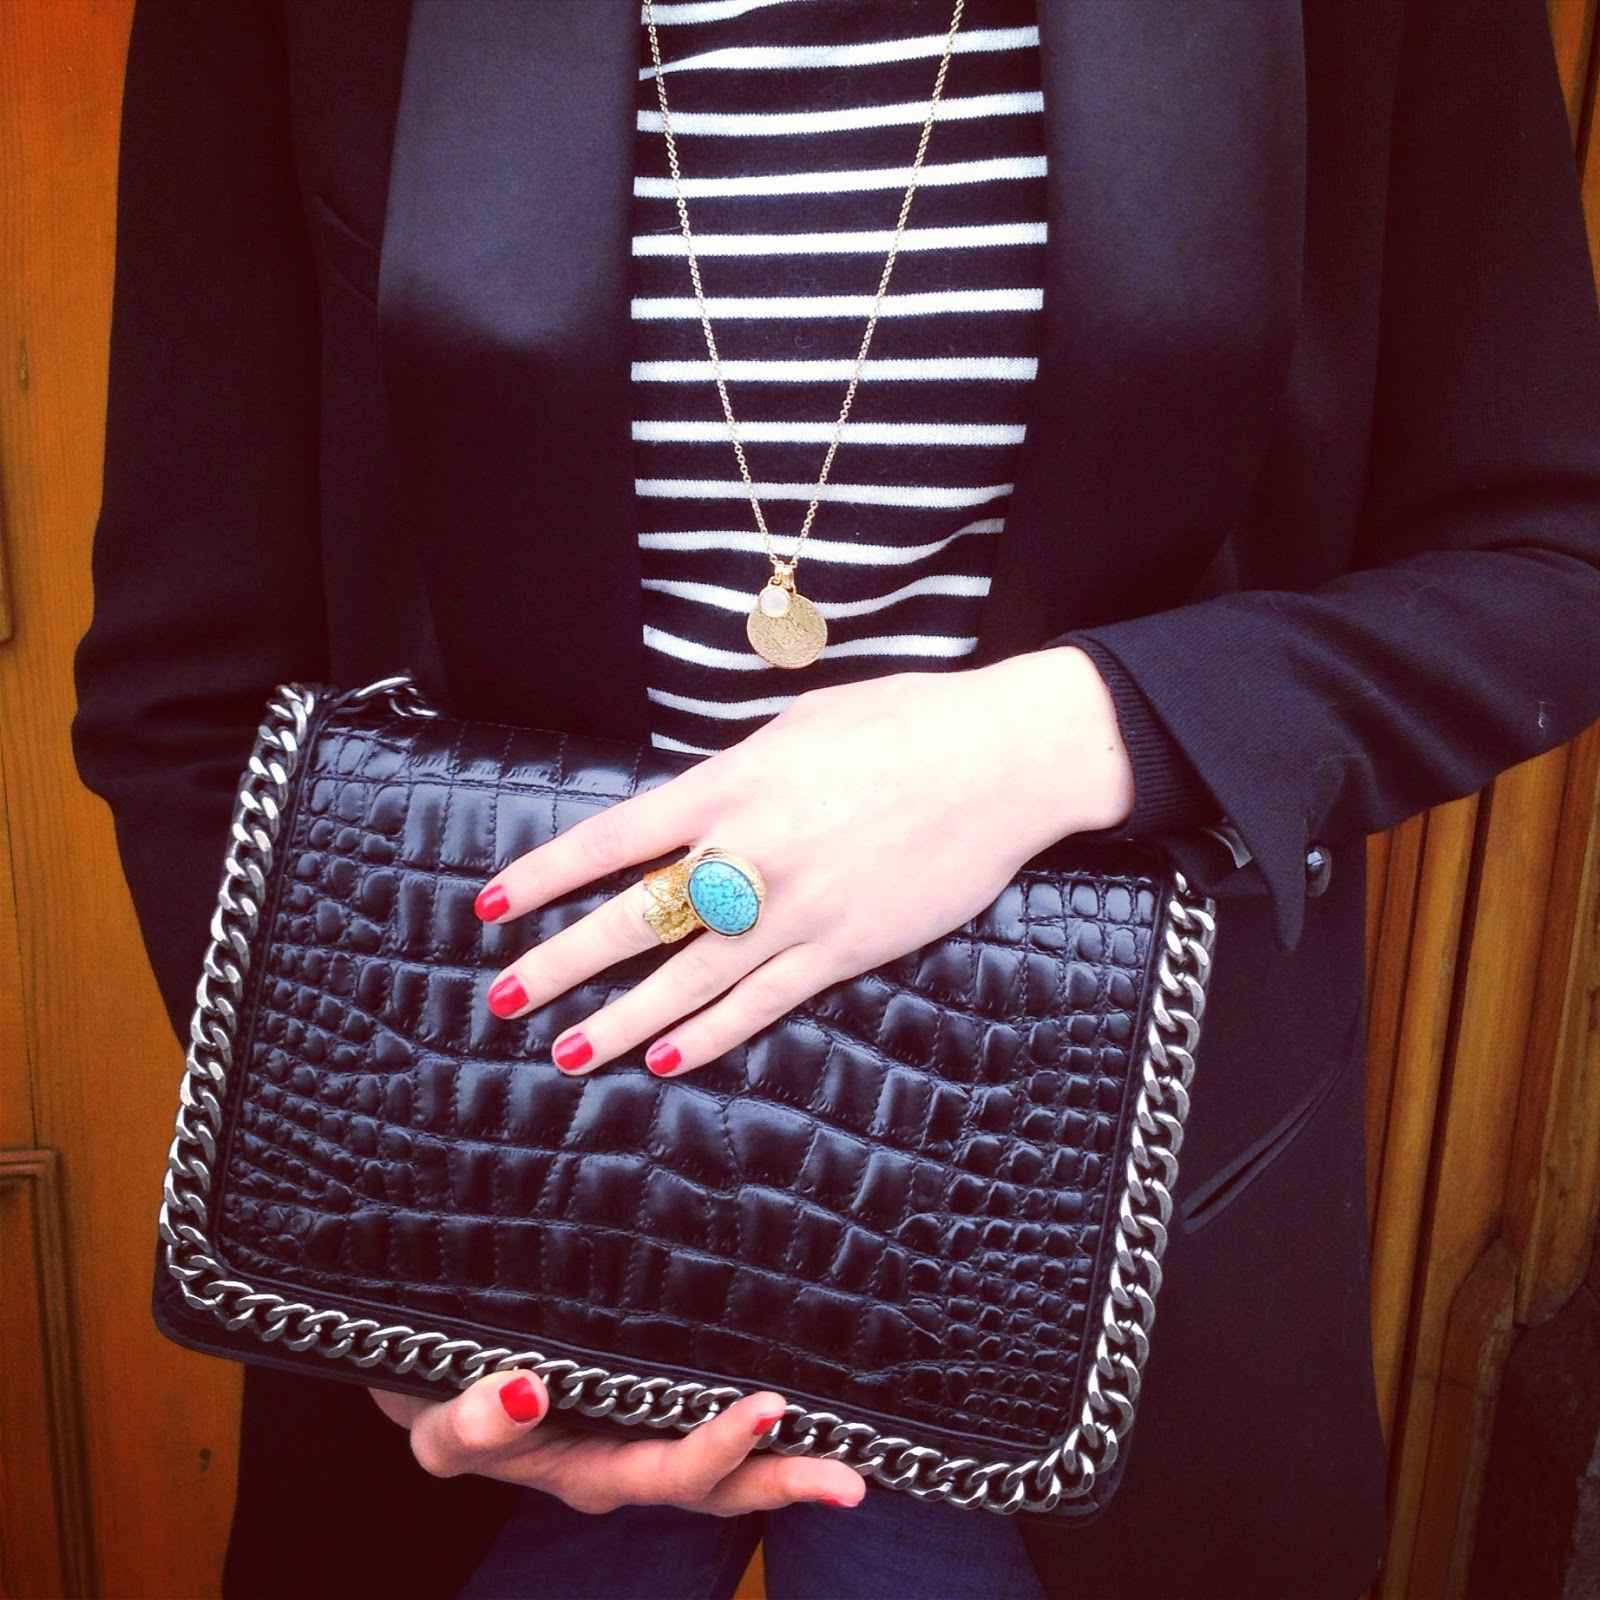 my week on instagram, zara bag, zara croco bag, isabel marant, isabel marant blazer, monica vinader, monica vinader jewellery